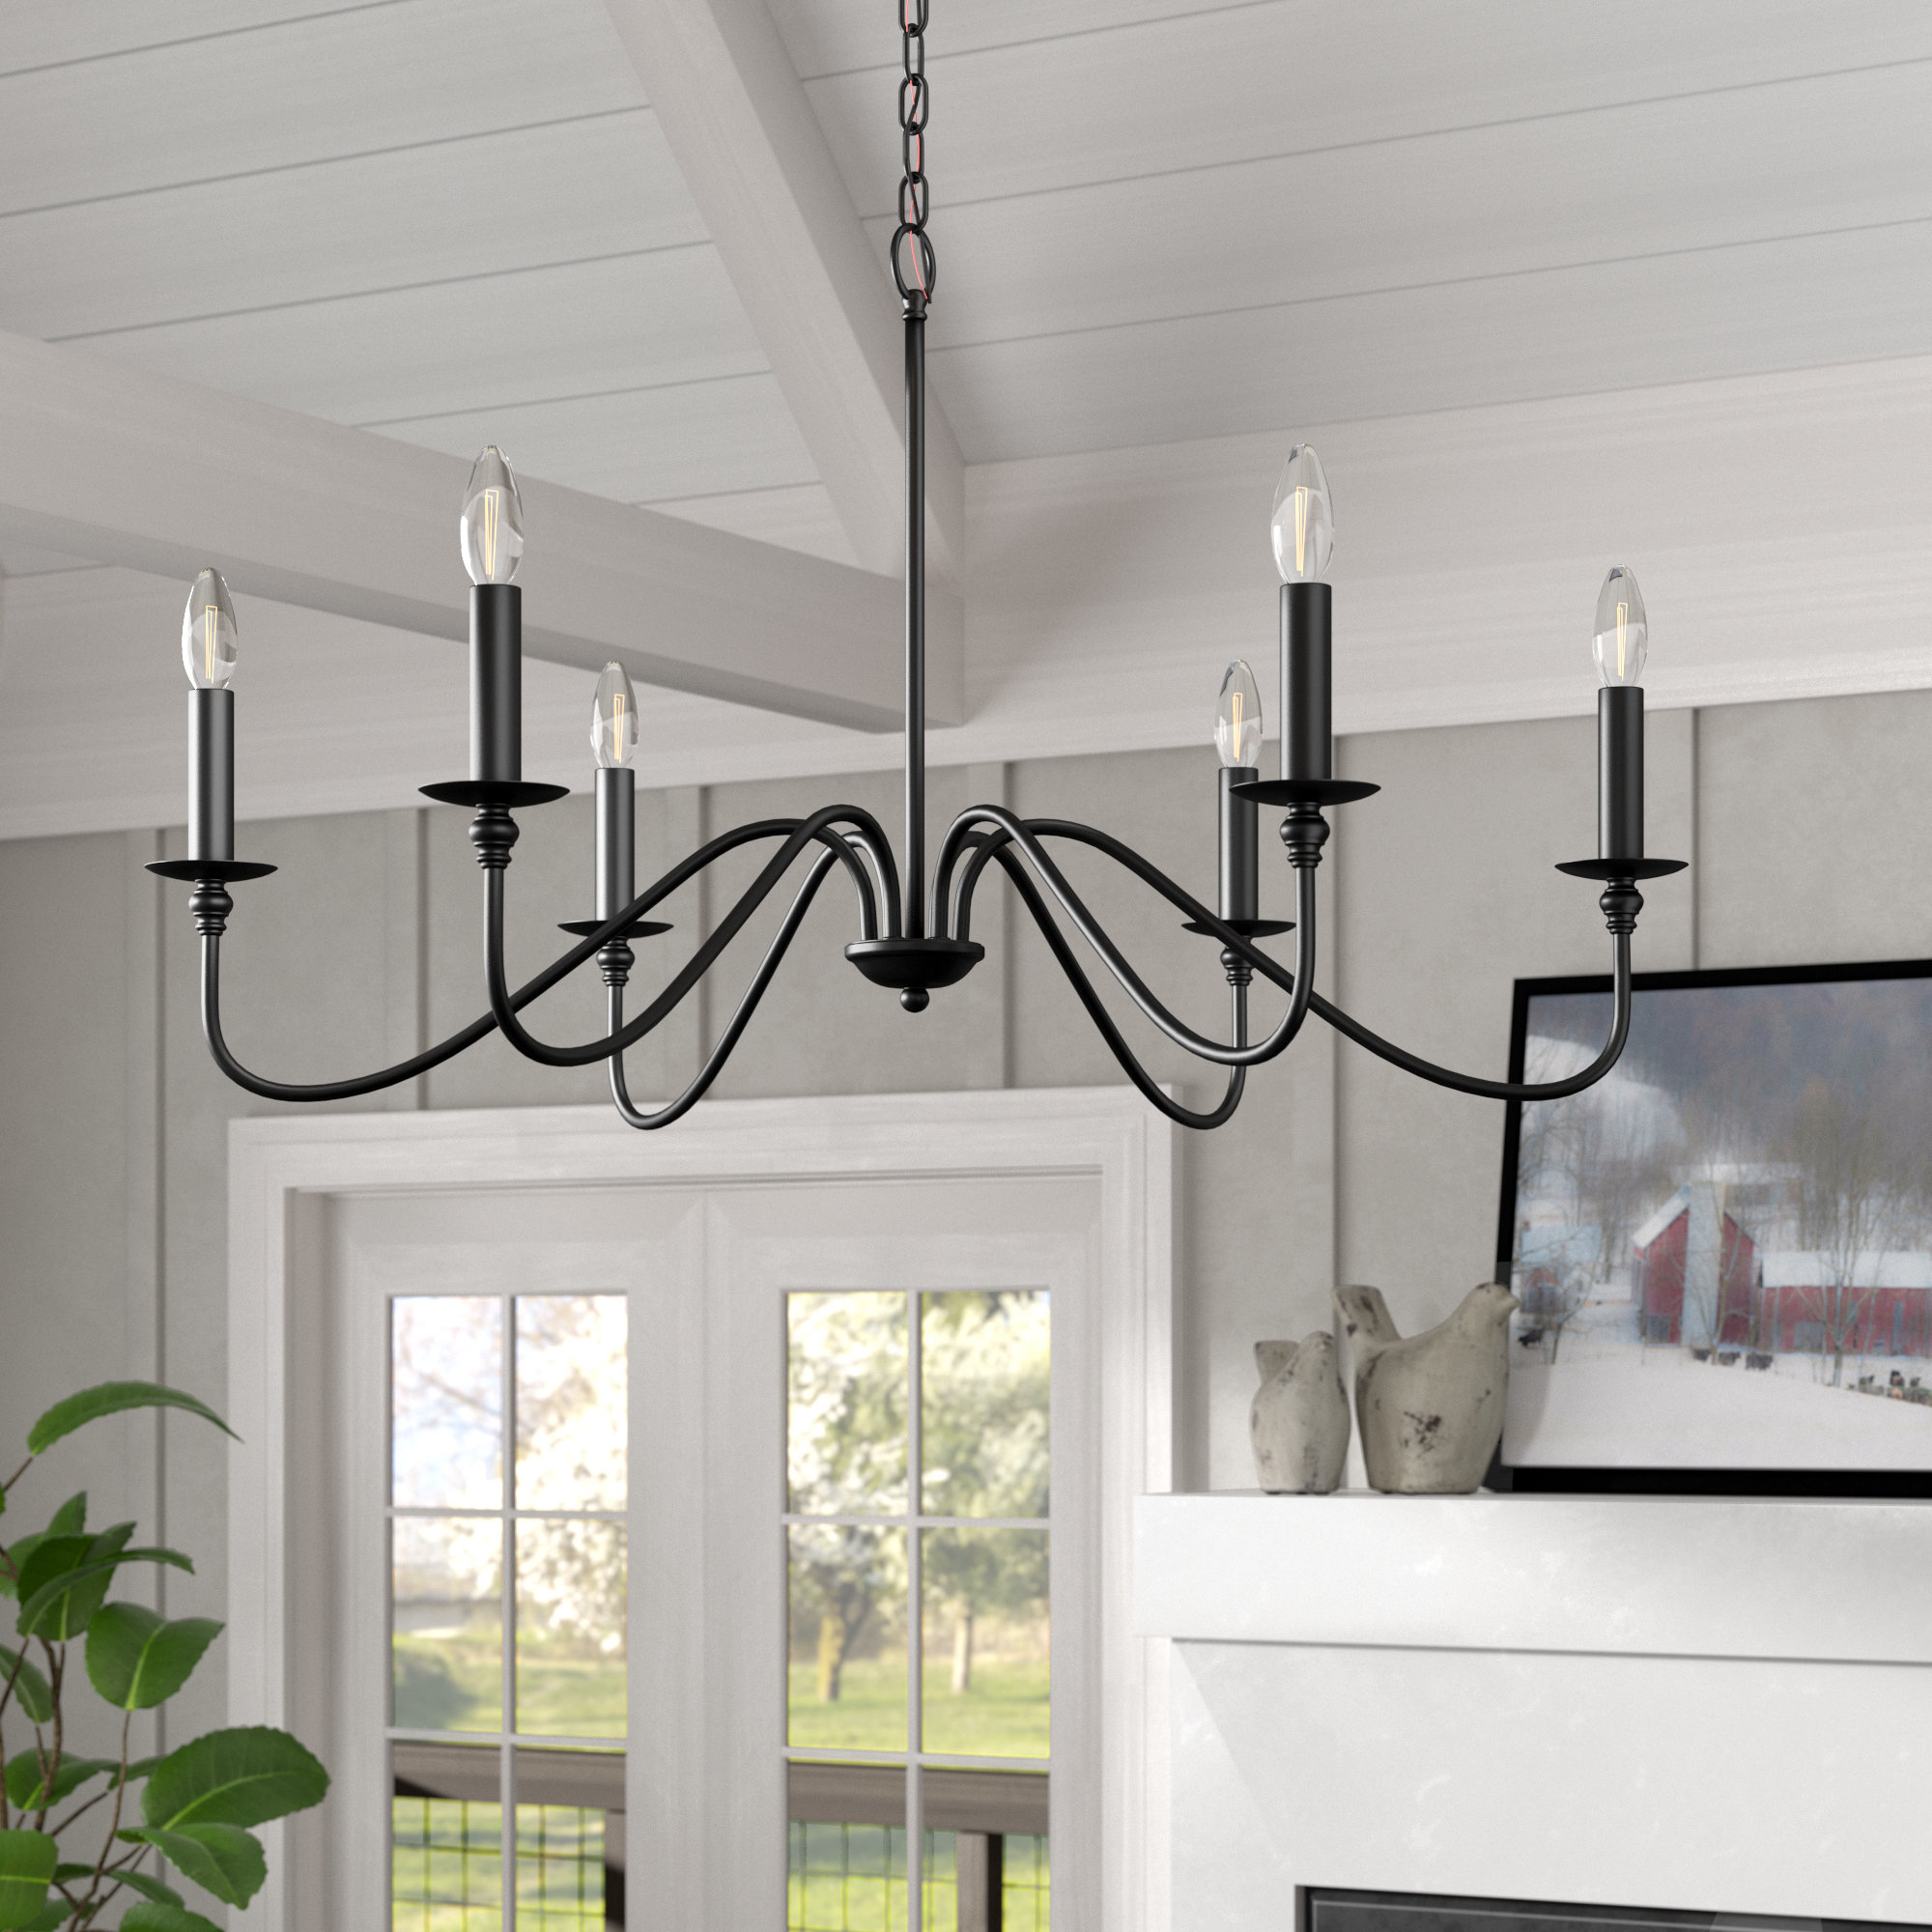 Hamza 6-Light Candle Style Chandelier with regard to Shaylee 5-Light Candle Style Chandeliers (Image 10 of 30)